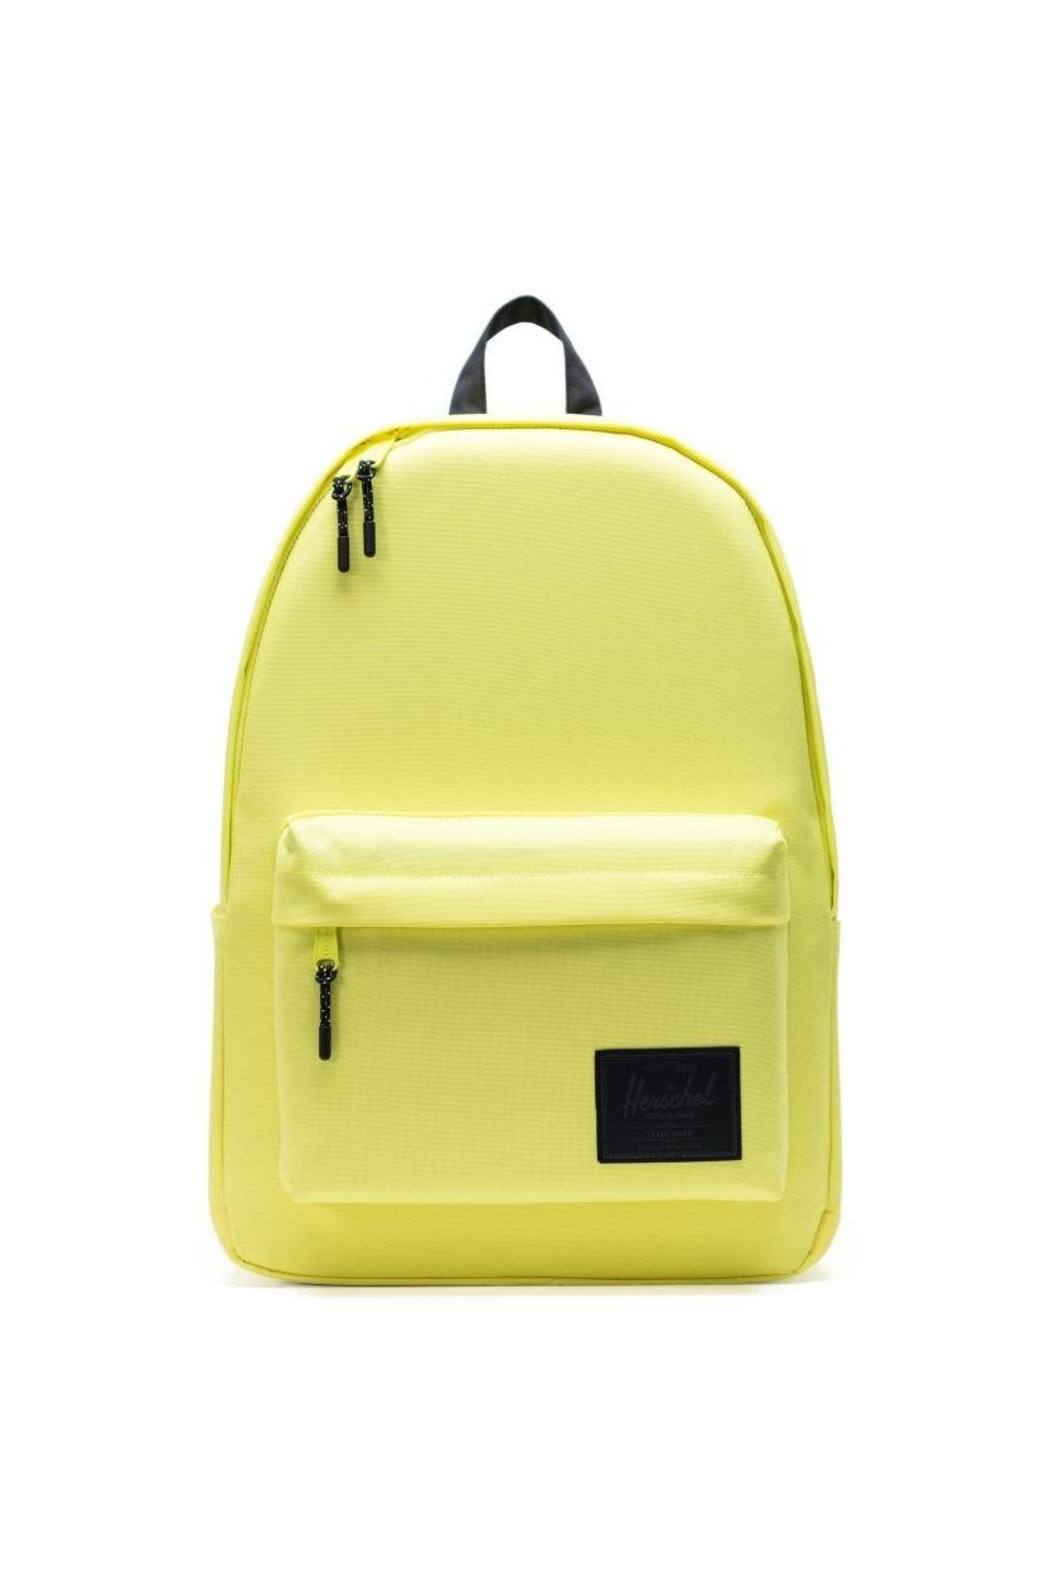 Herschel Supply Co. Highligher Yellow Backpack - Main Image